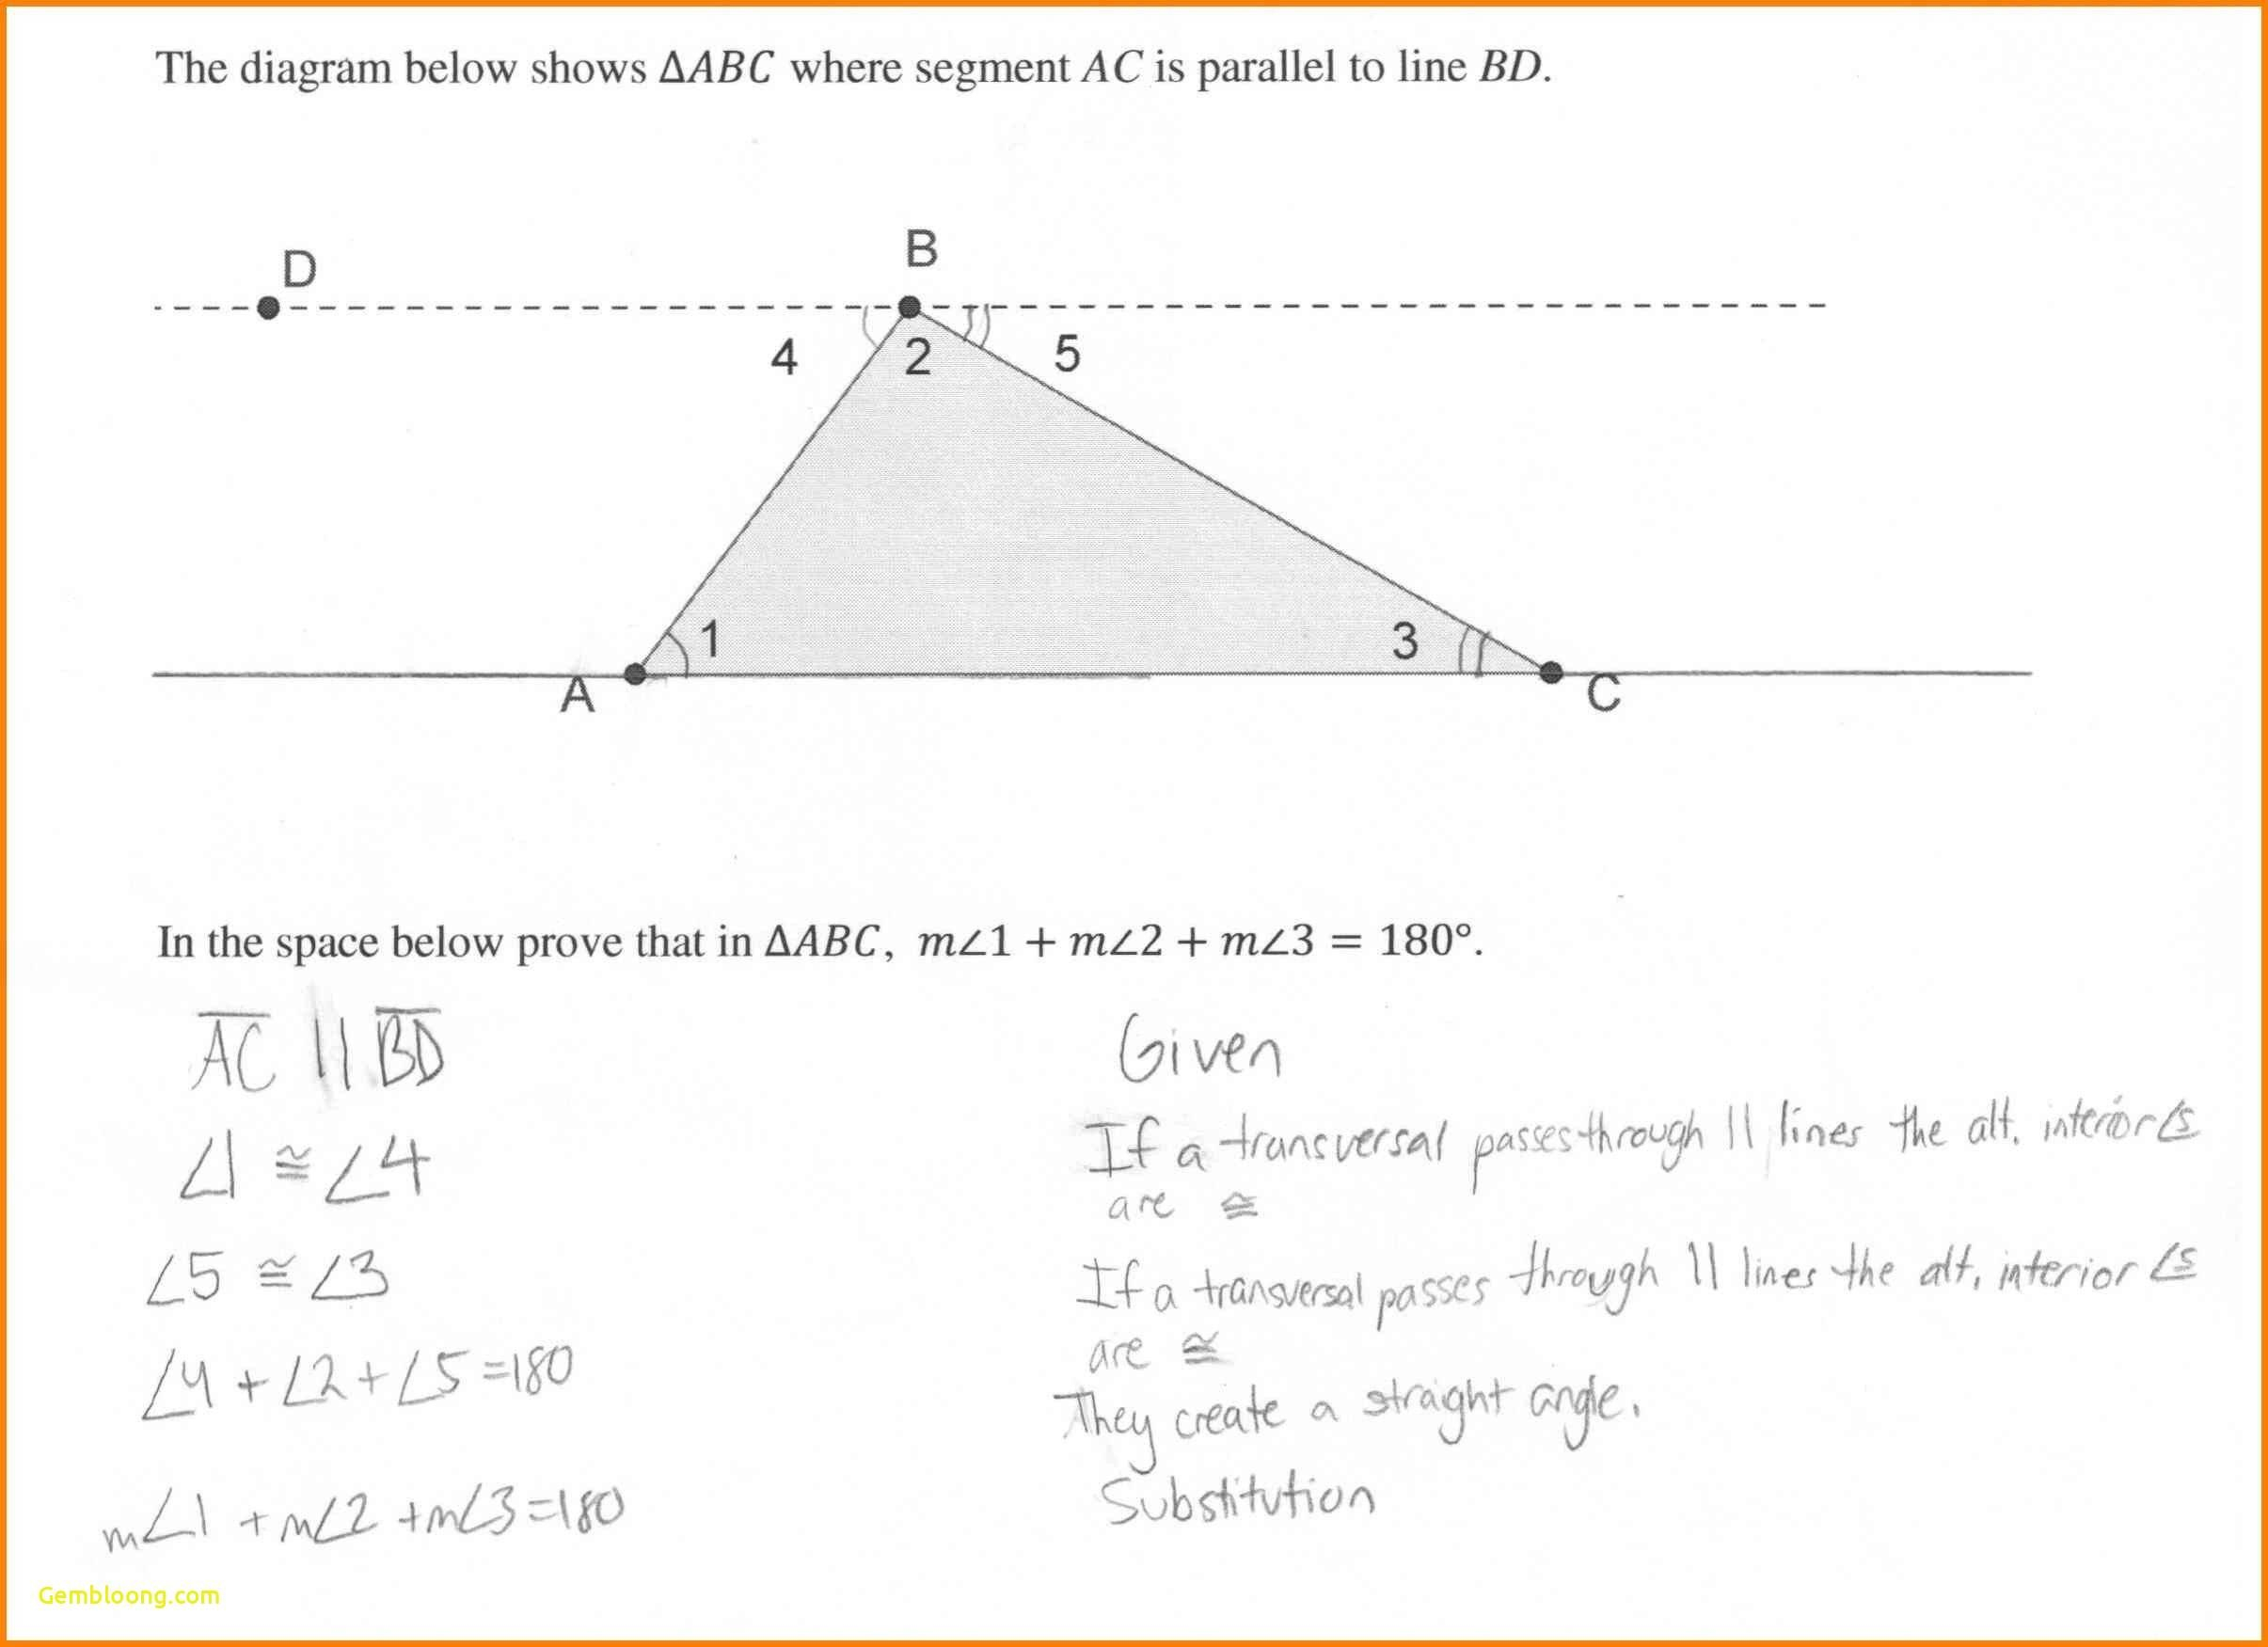 Proving Triangles Congruent Worksheet  Cramerforcongress Also Triangle Proofs Worksheet Answers